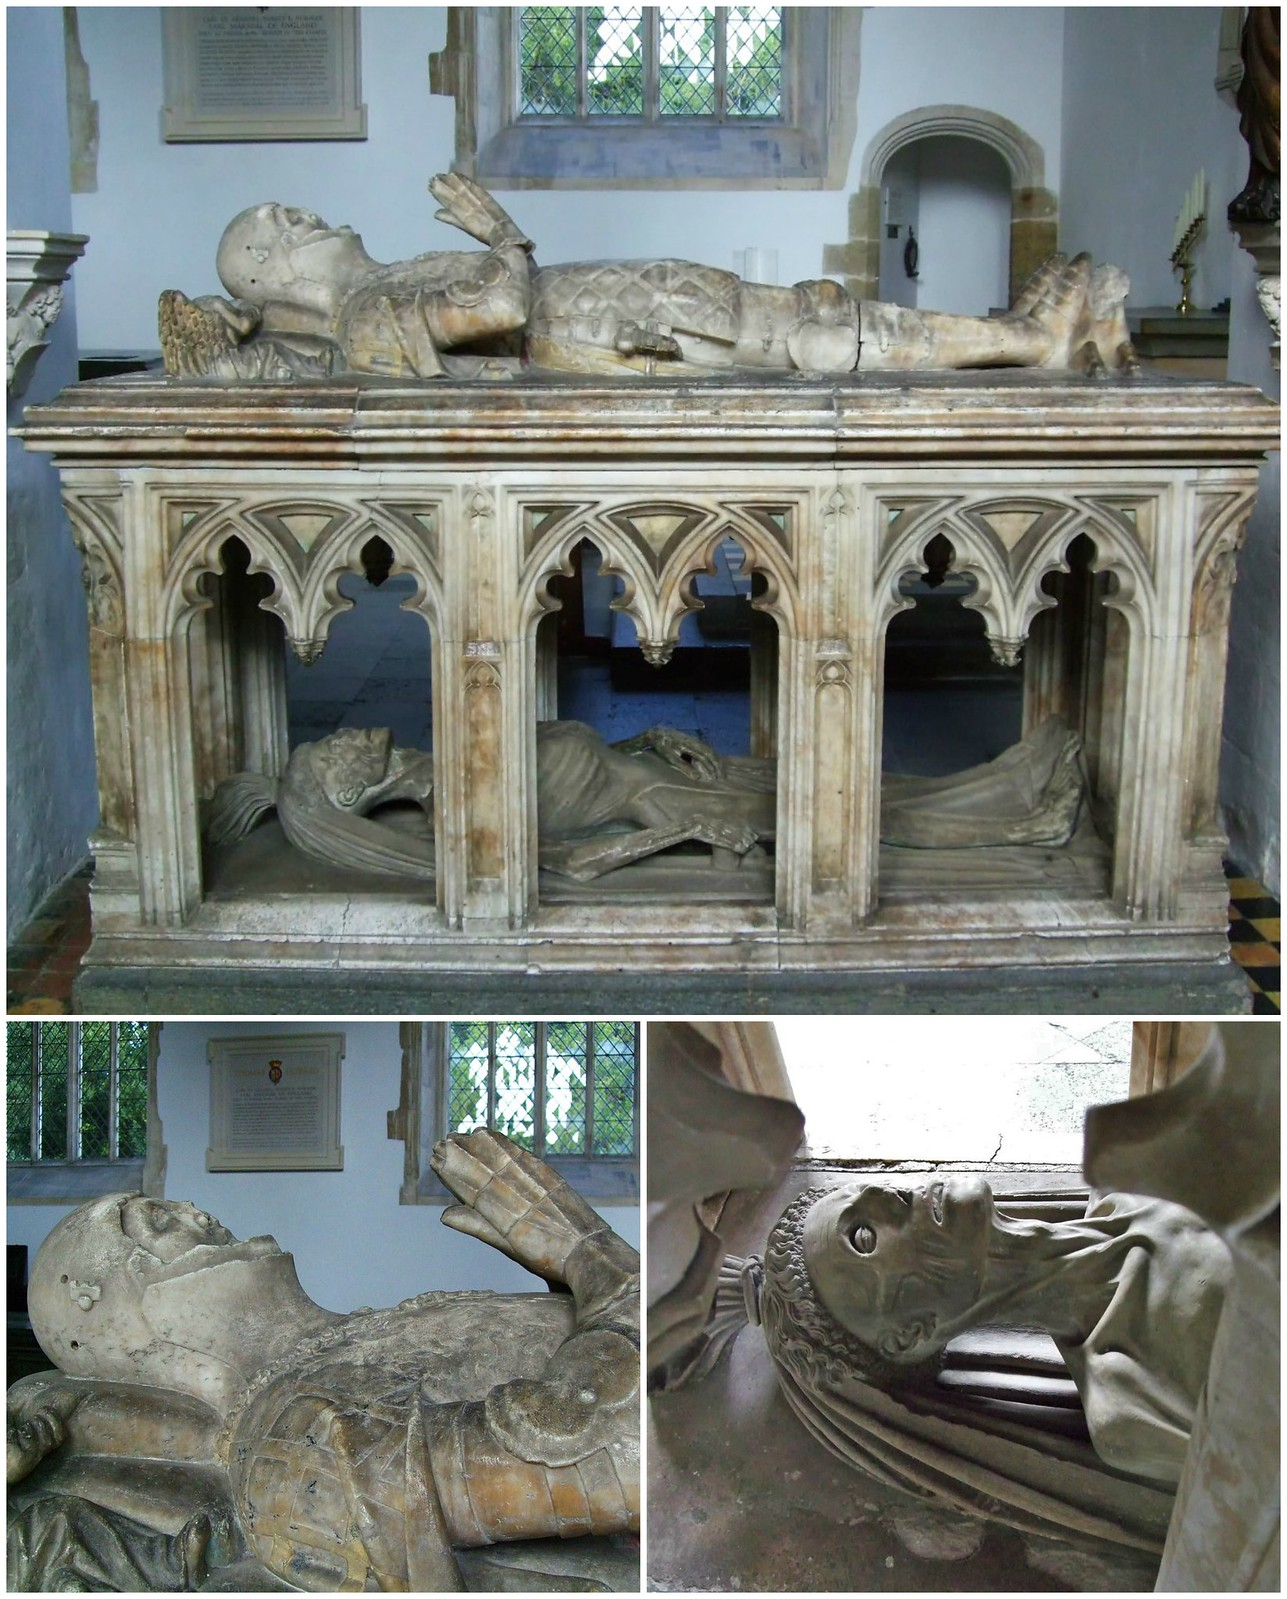 Tomb and effigy of John FitzAlan, 14th Earl of Arundel (died 1435), in the Fitzalan Chapel at Arundel. Credit Lampman